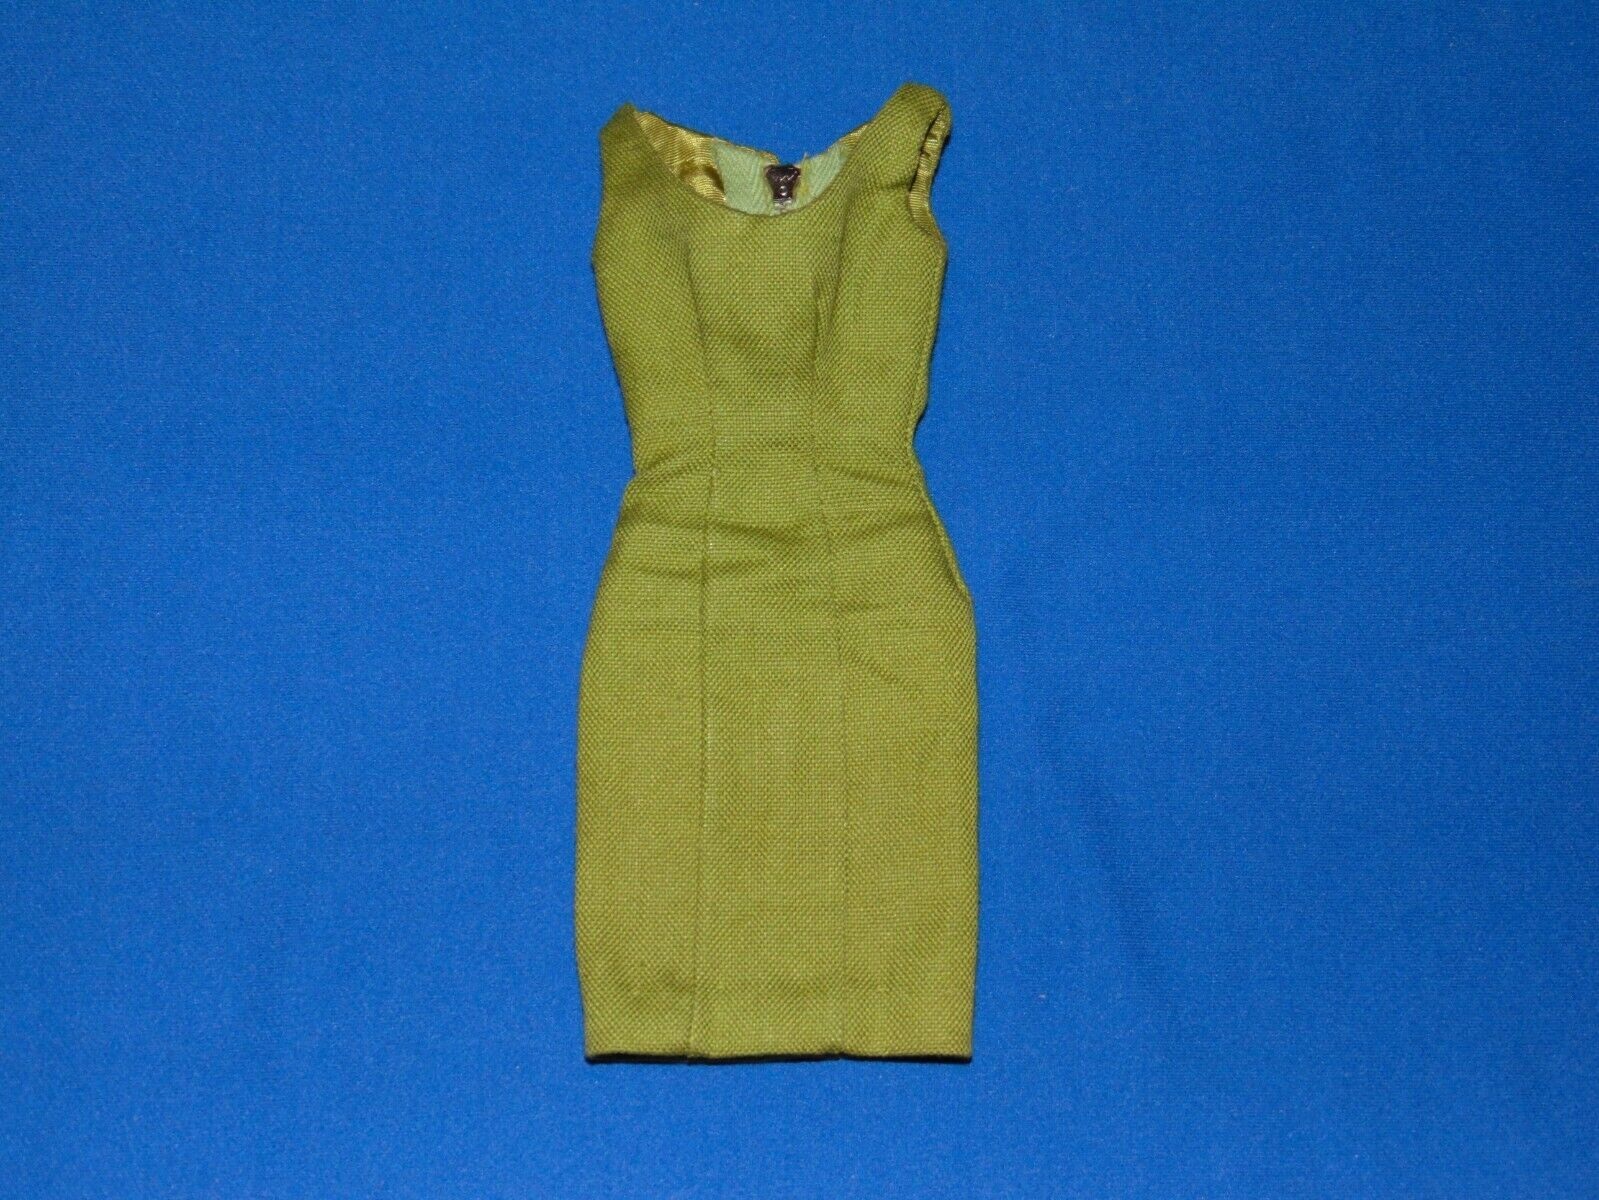 VINTAGE BARBIE POODLE PARADE DRESS 1643 OLIVE GREEN SHEATH DRESS - $19.95